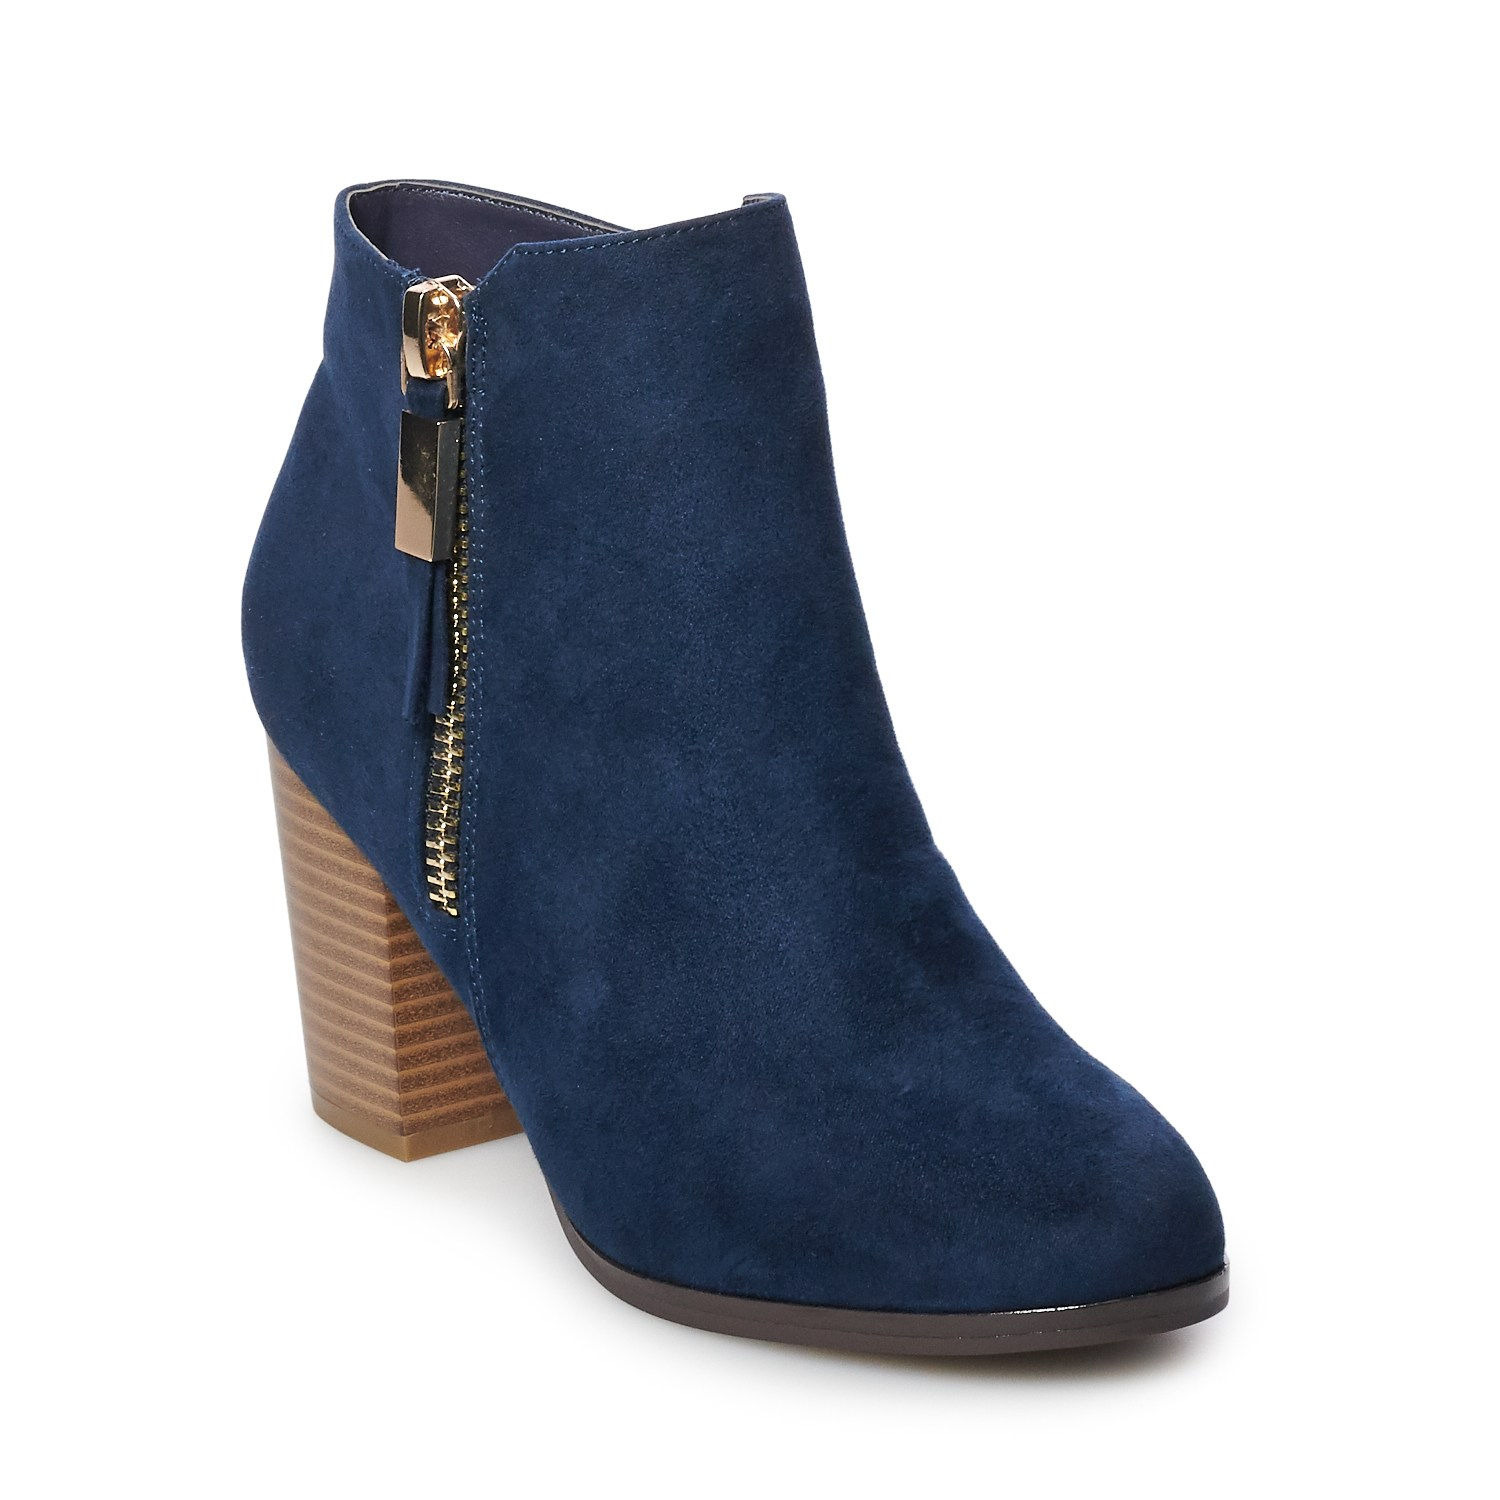 Apt. 9® Timezone Womenu0027s High Heel Ankle Boots